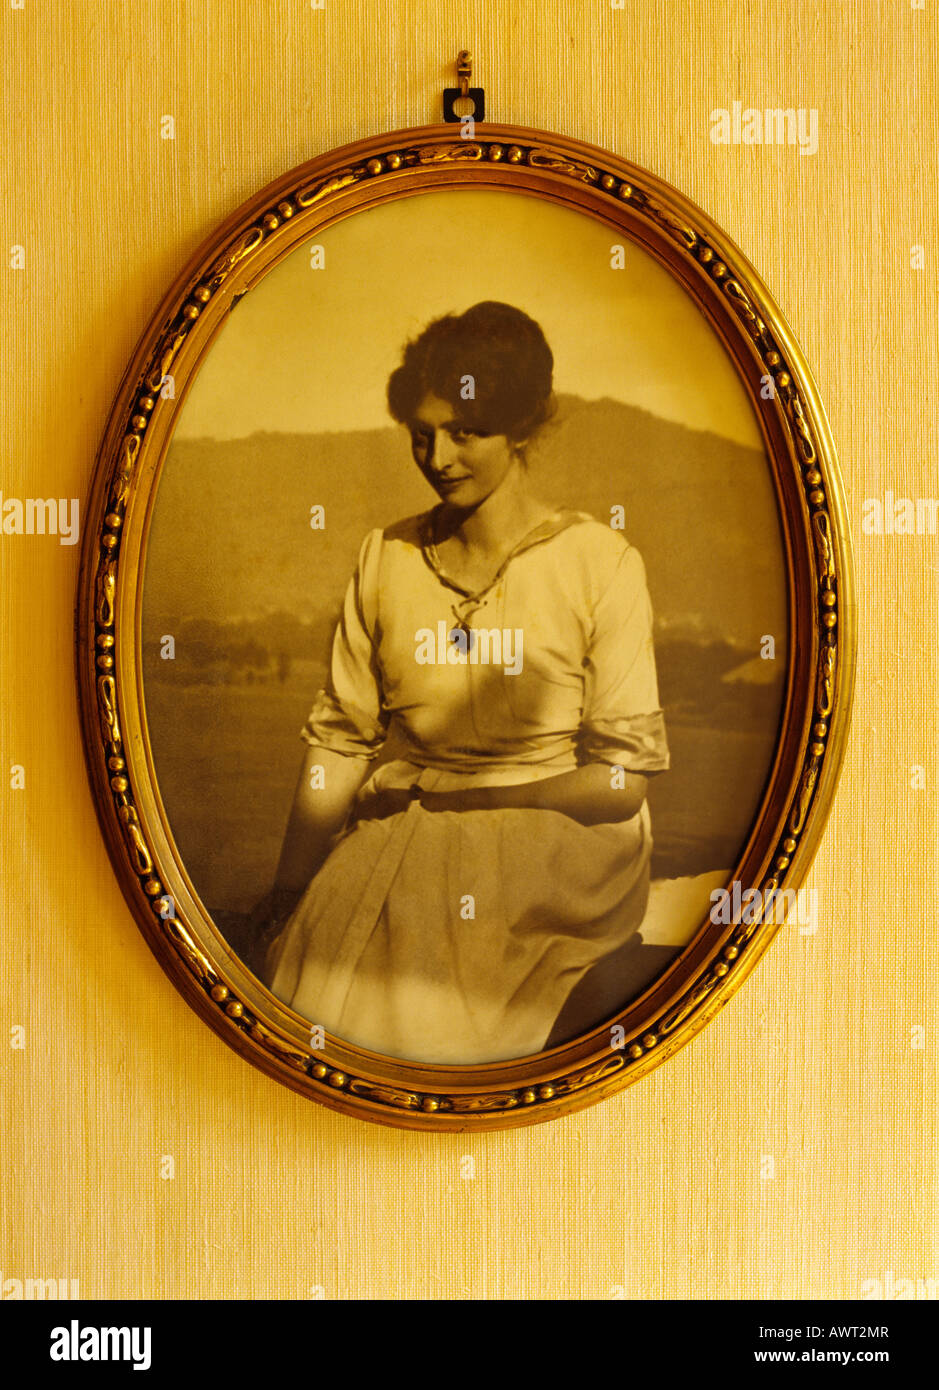 1920's vintage photo of a young woman in an oval frame - Stock Image